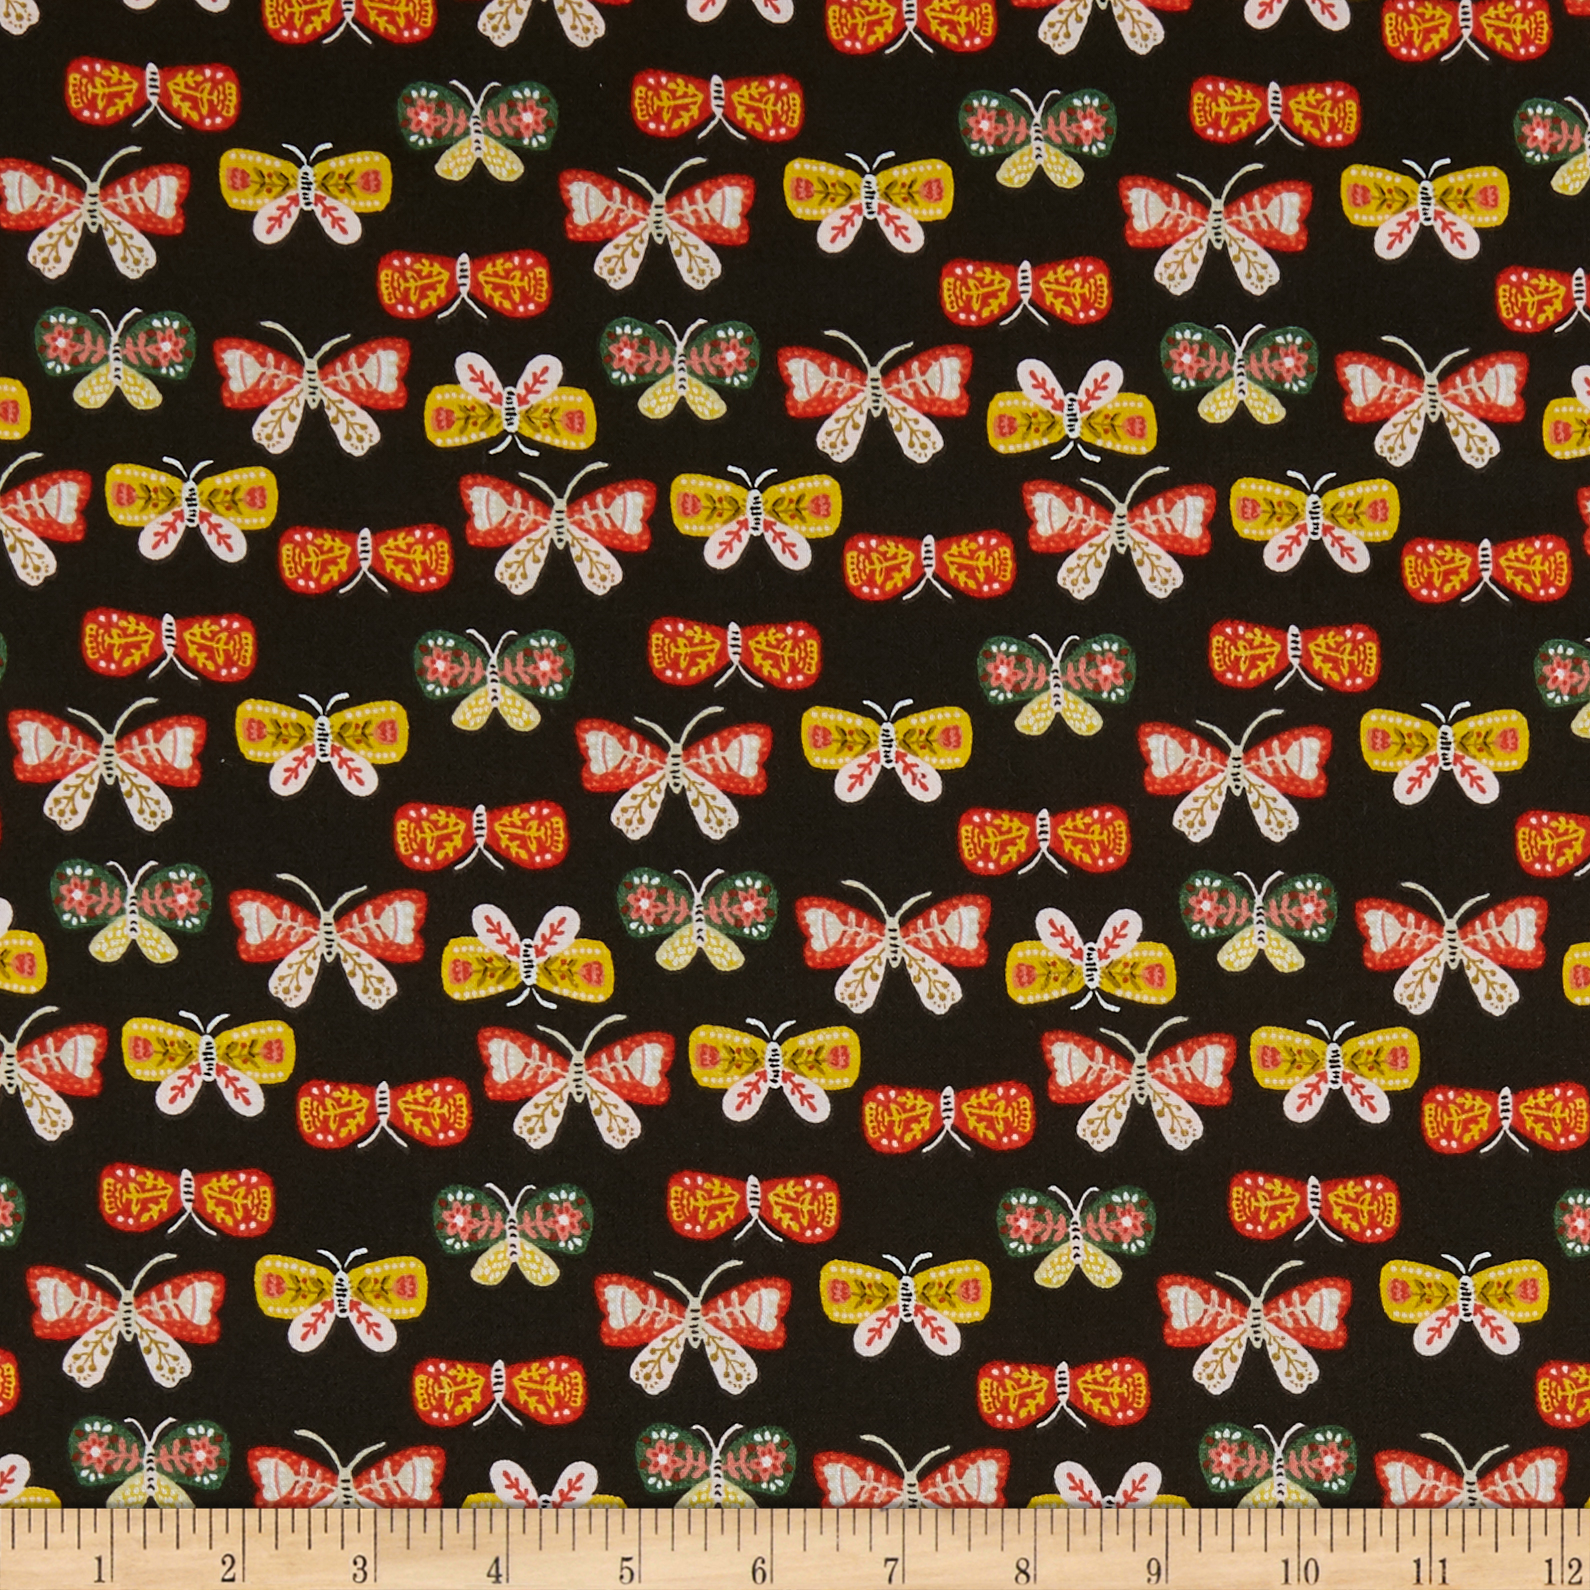 INOpets.com Anything for Pets Parents & Their Pets Fabric Editions Glorious Garden Butterflies